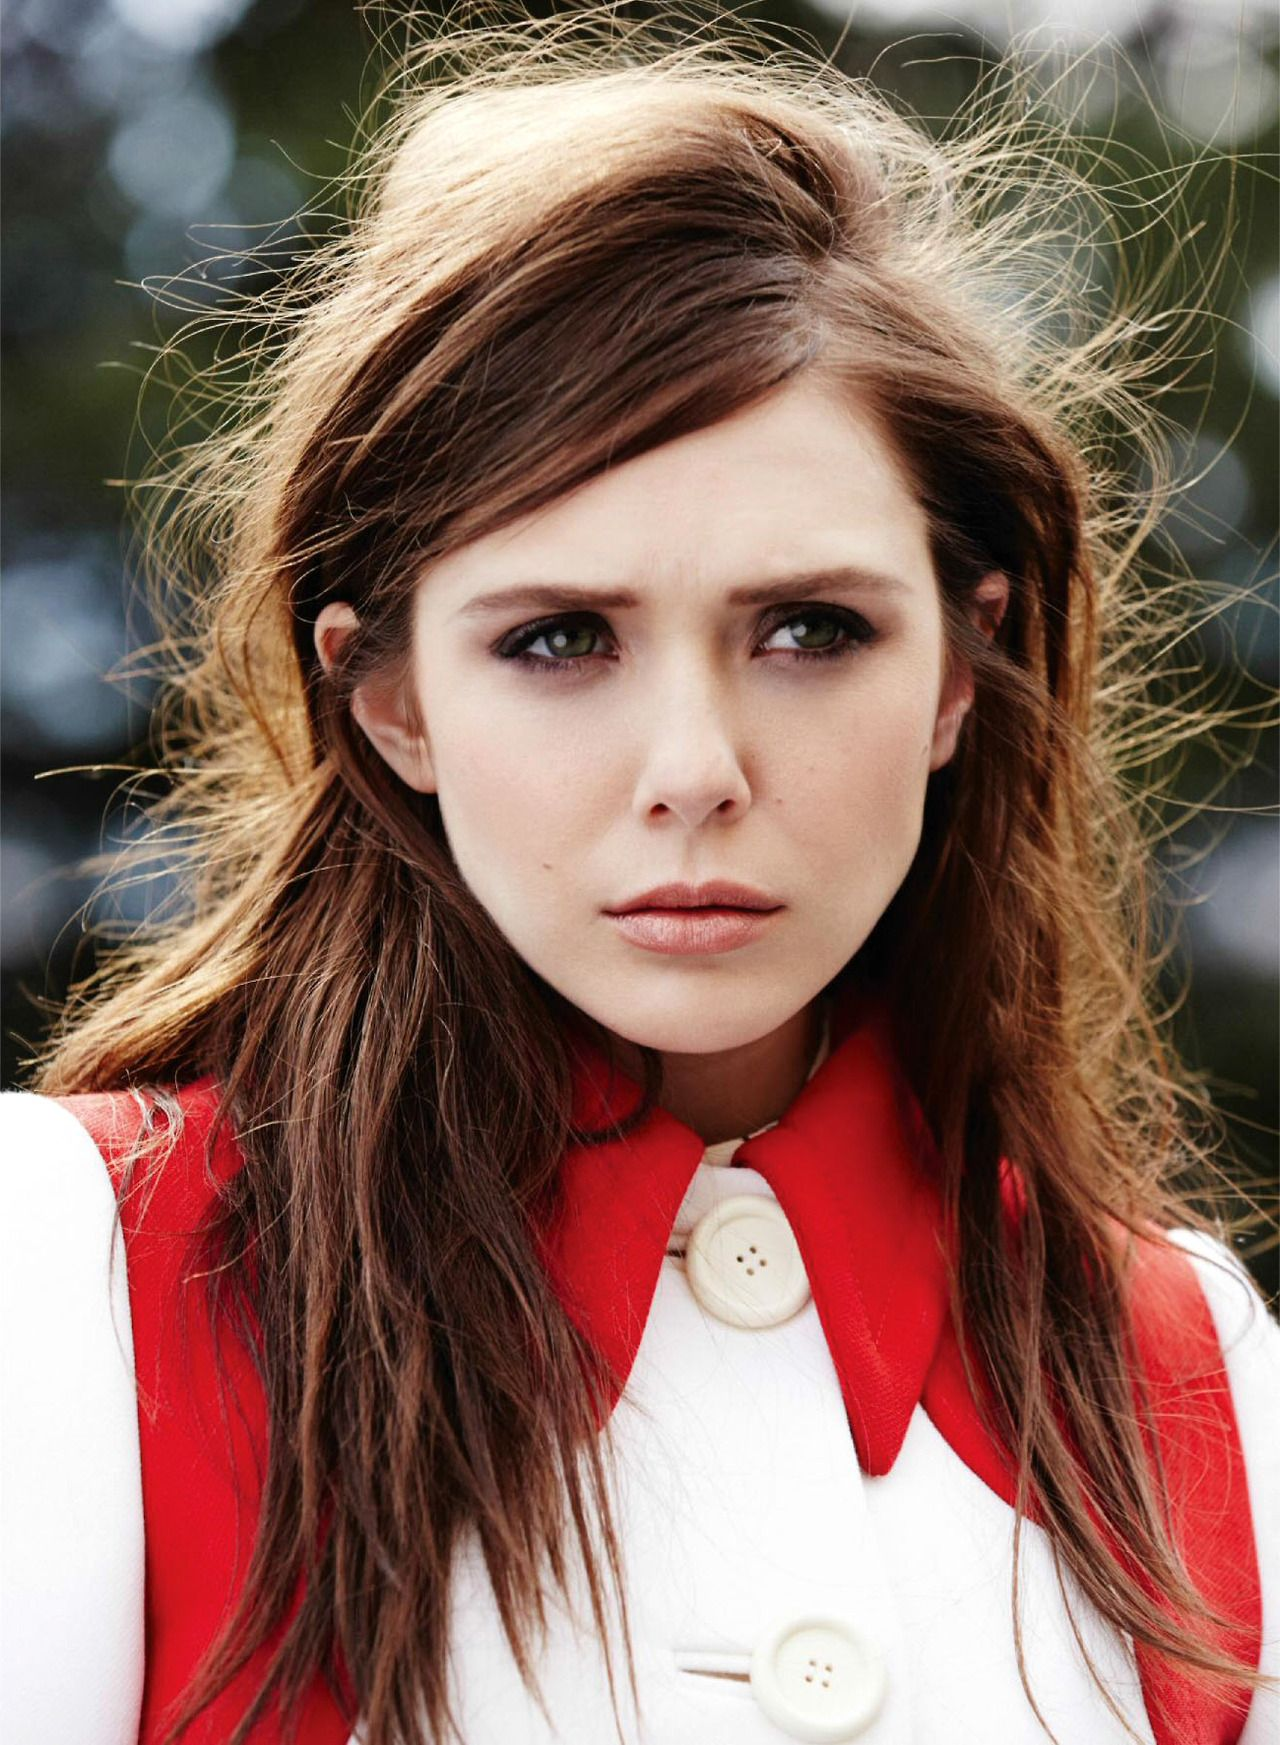 Elizabeth Olsen Gq Background 1 Hd Wallpapers Belles